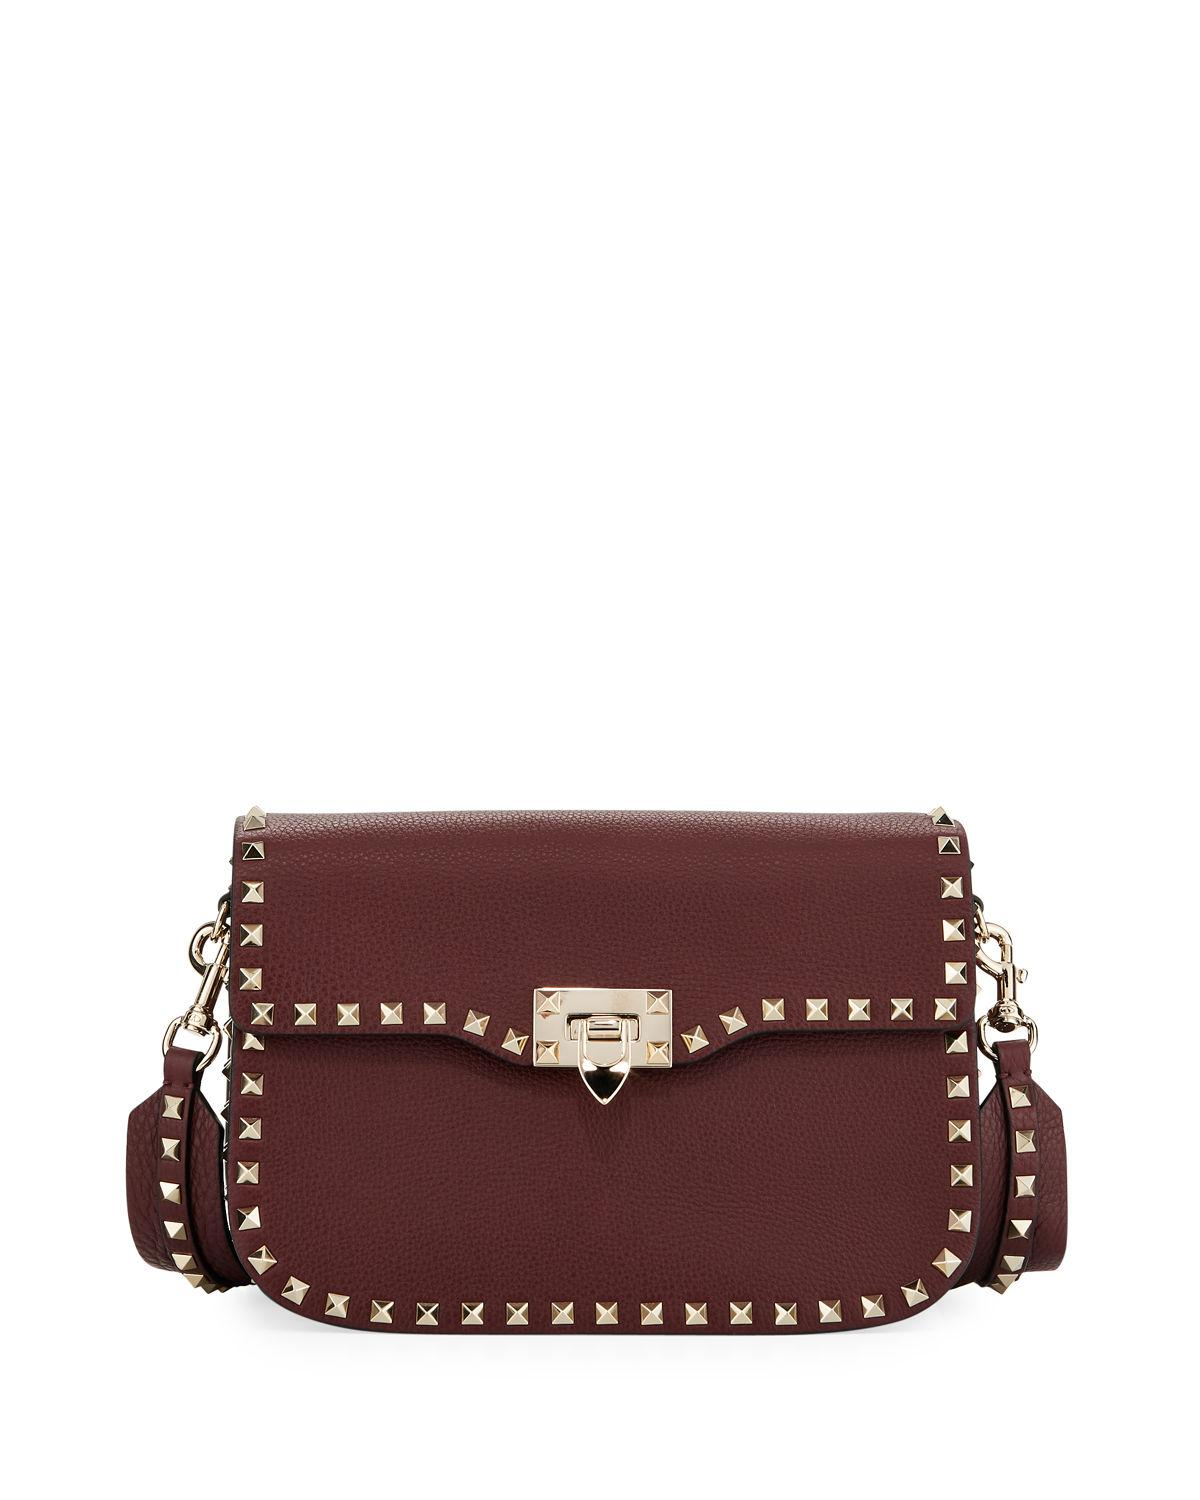 a6666eefe1 Valentino Rockstud Medium Leather Saddle Shoulder Bag In Dark Red ...